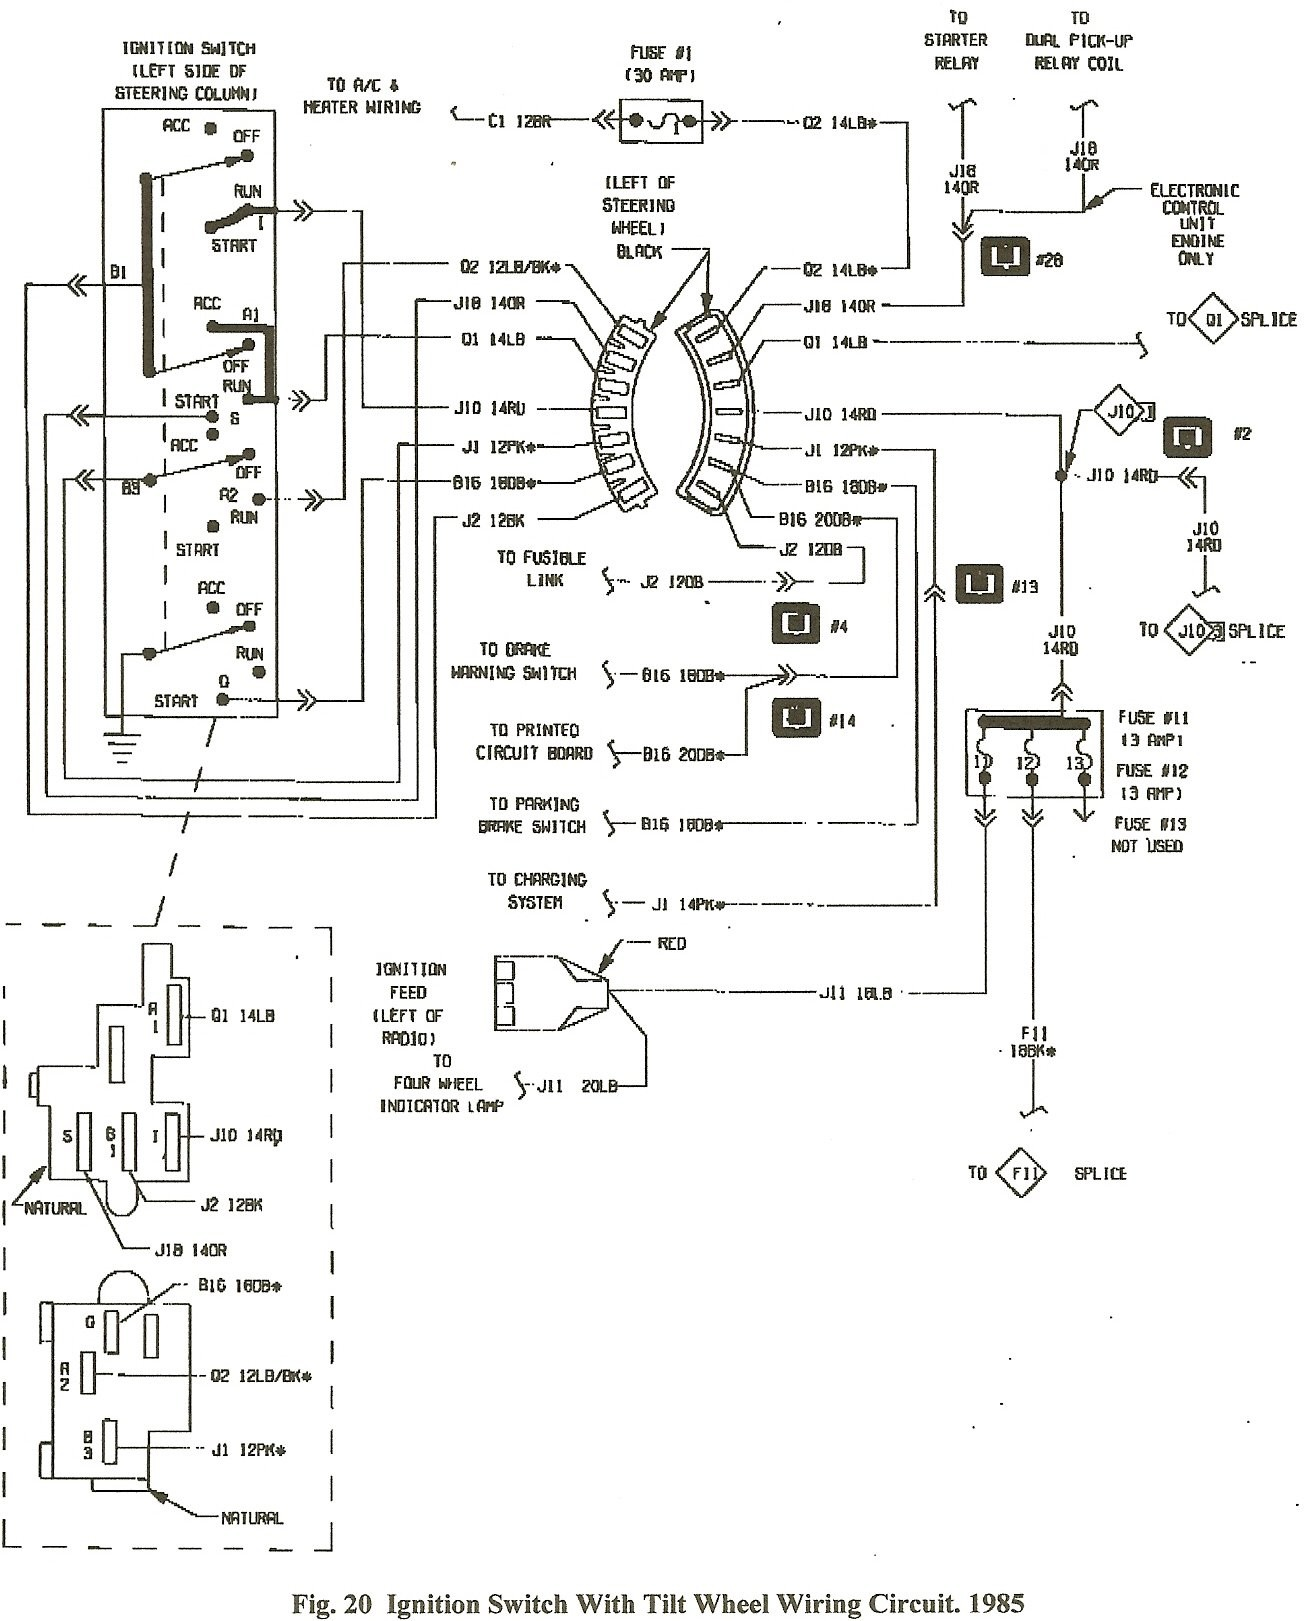 1989 dodge d150 wiring harness find wiring diagram u2022 rh ultradiagram today 1978 Dodge D200 Wiring-Diagram 1983 dodge ram wiring diagram